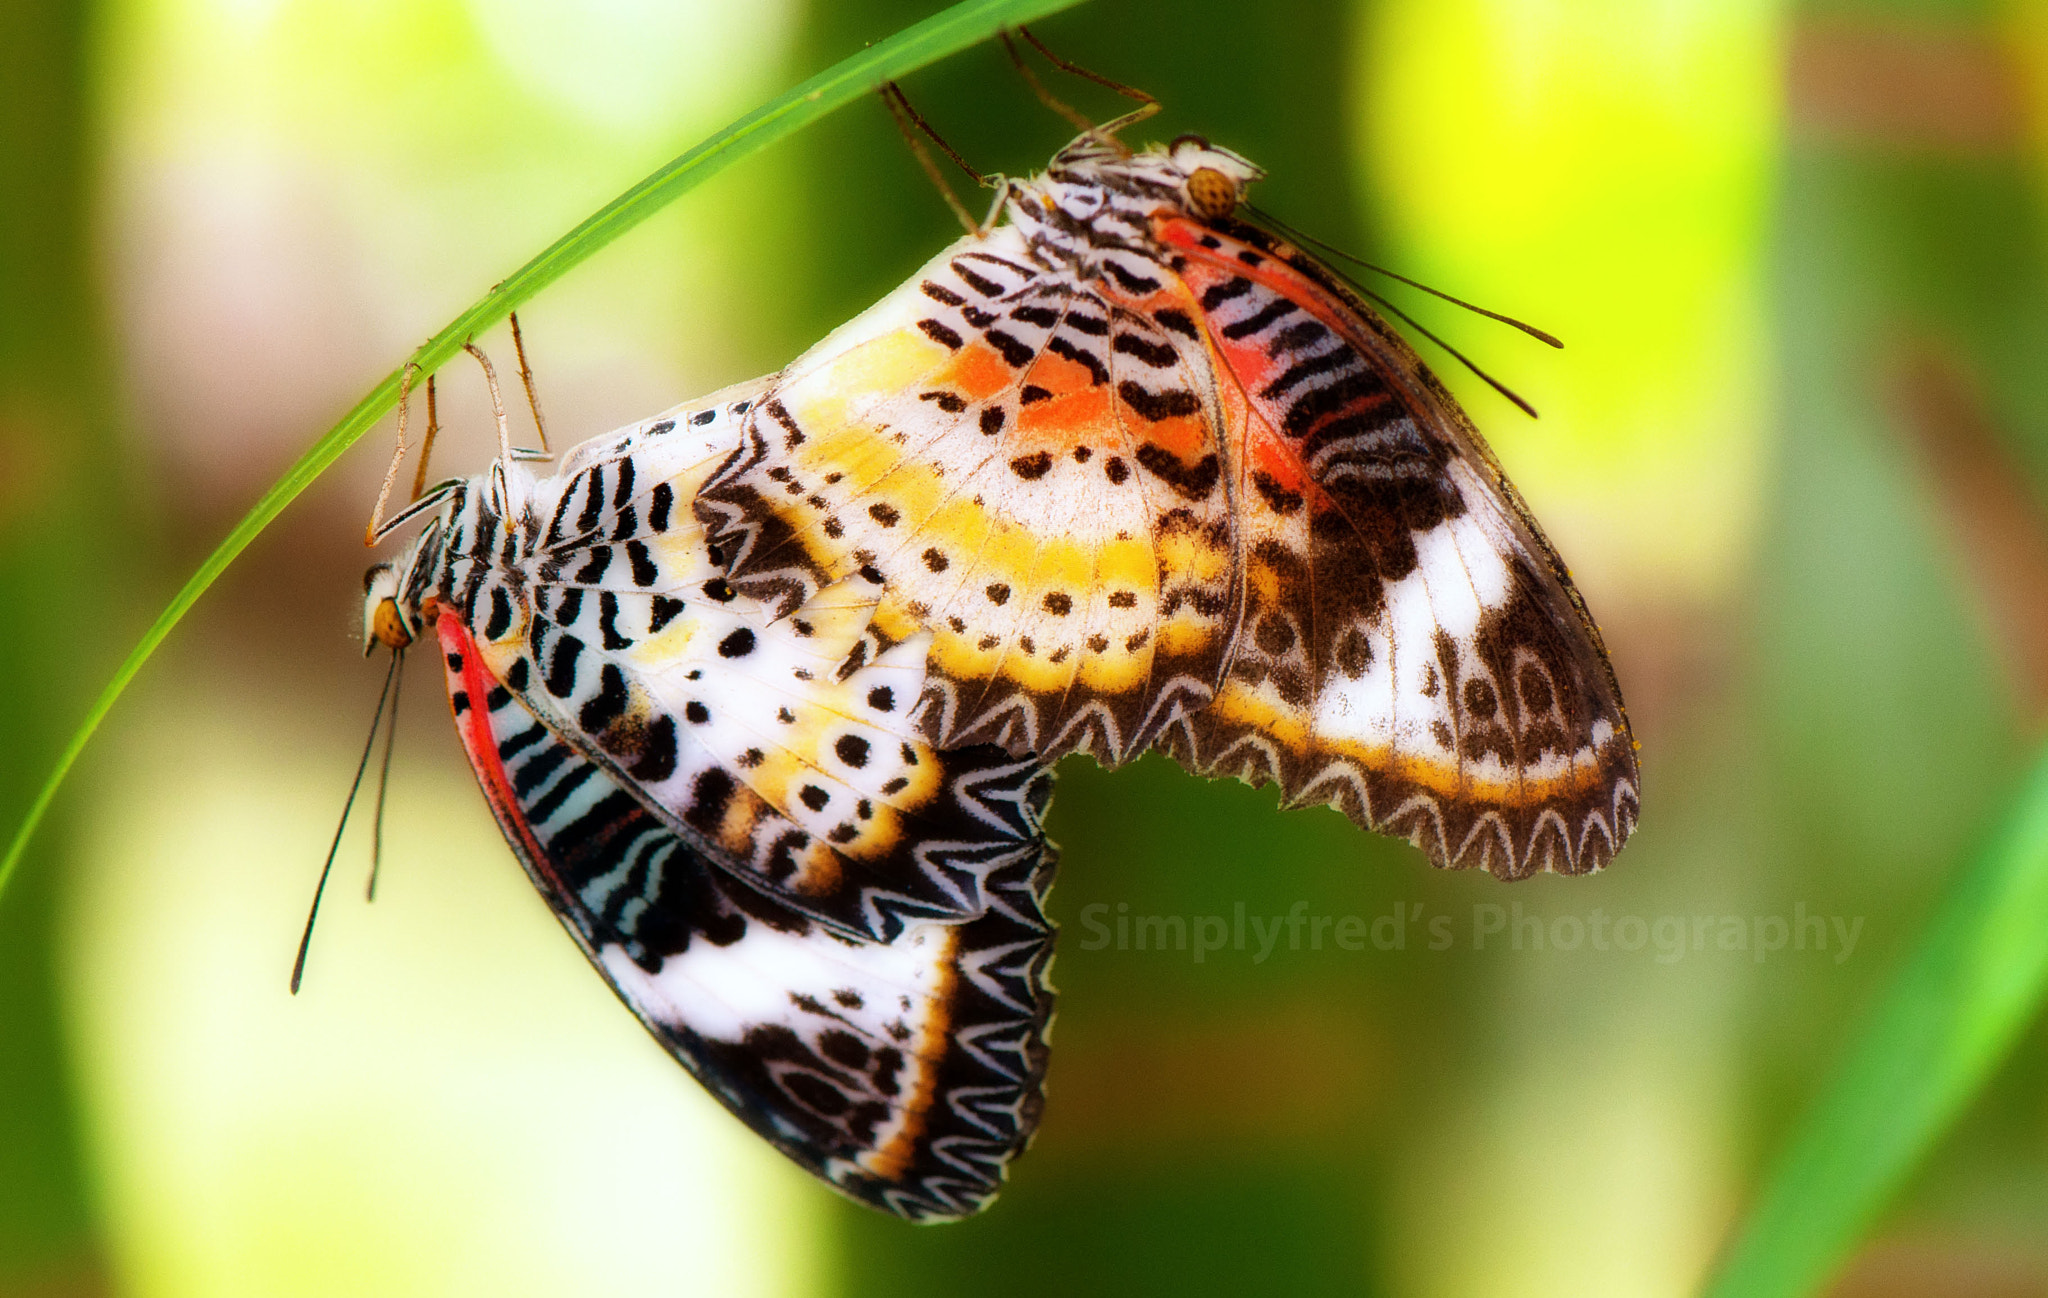 Photograph Butterflies love motion by Alfred Quah on 500px